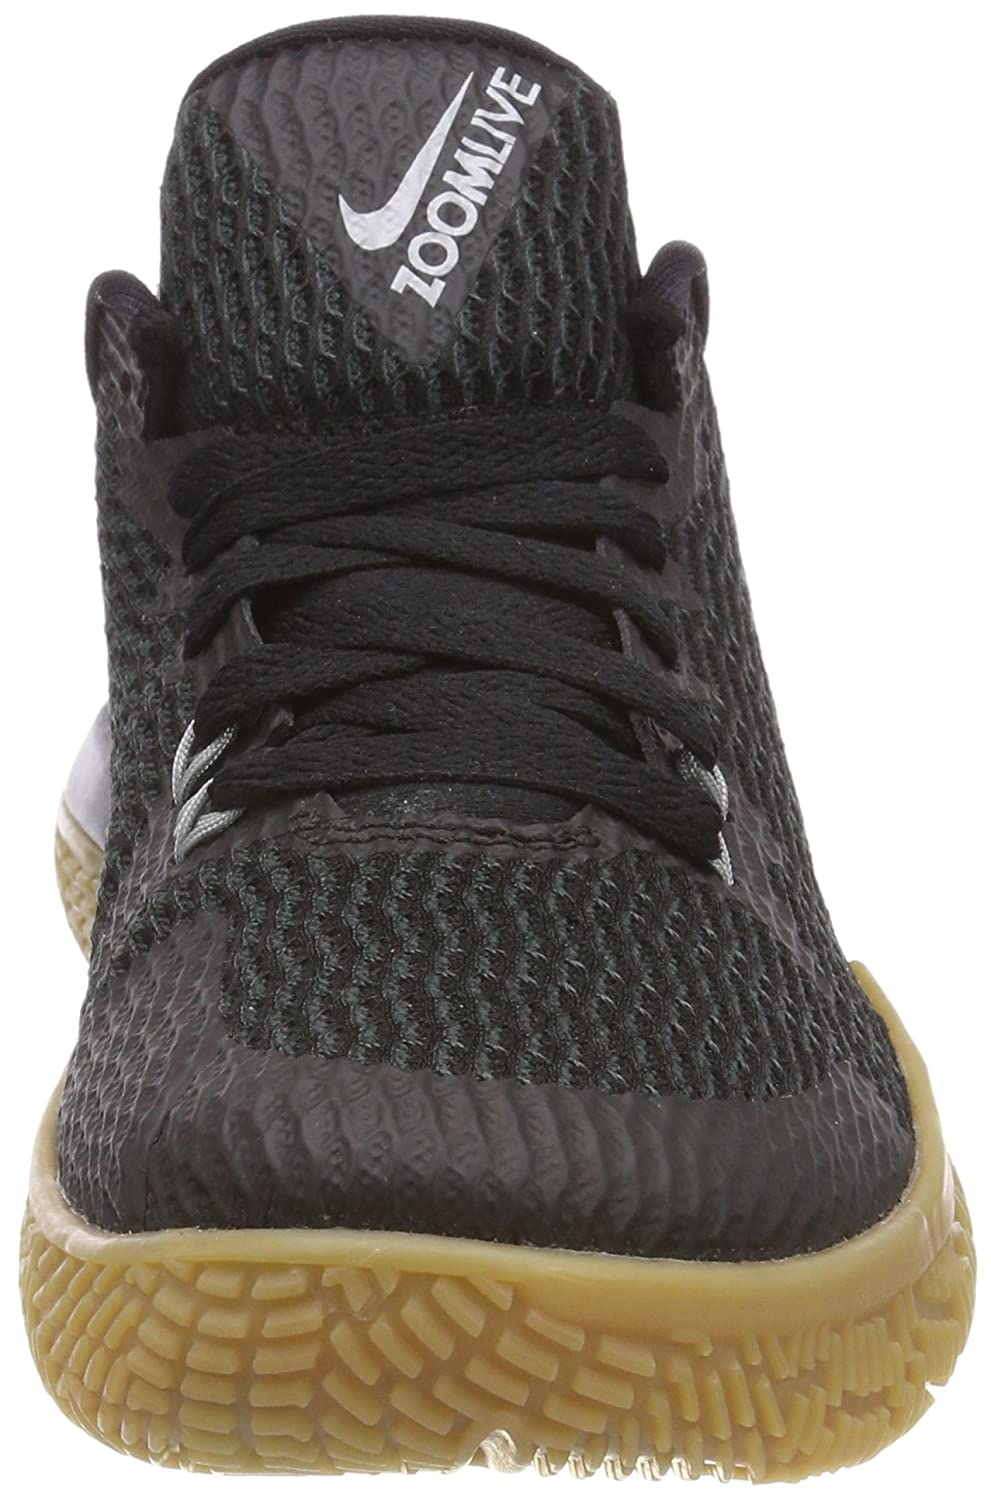 Nike Zoom Live II, Chaussures de Basketball Femme, Multicolore (Black/Anthracite/Gum Light Brown/Reflect Silver 001), 36.5 EU